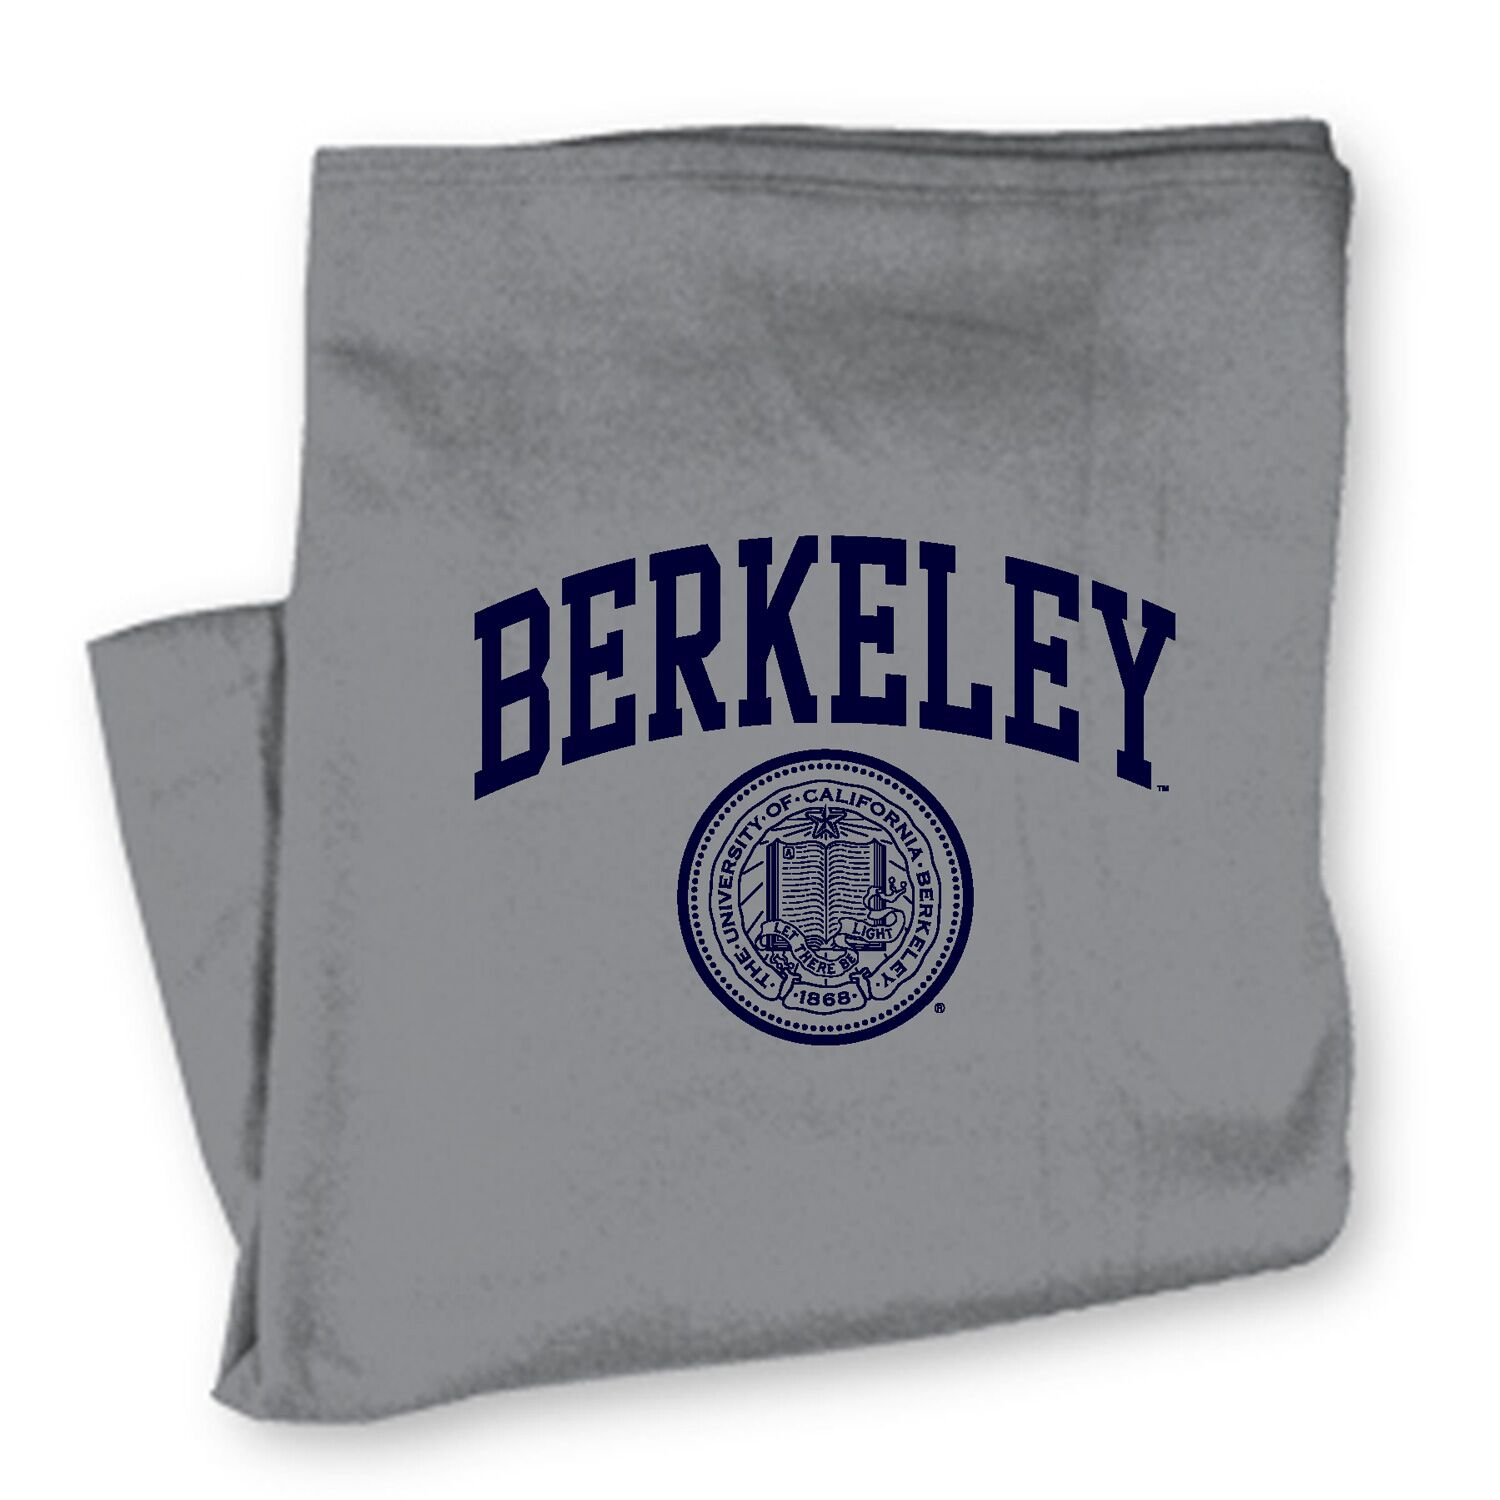 University of California Sweatshirt Blanket Berkeley with Seal